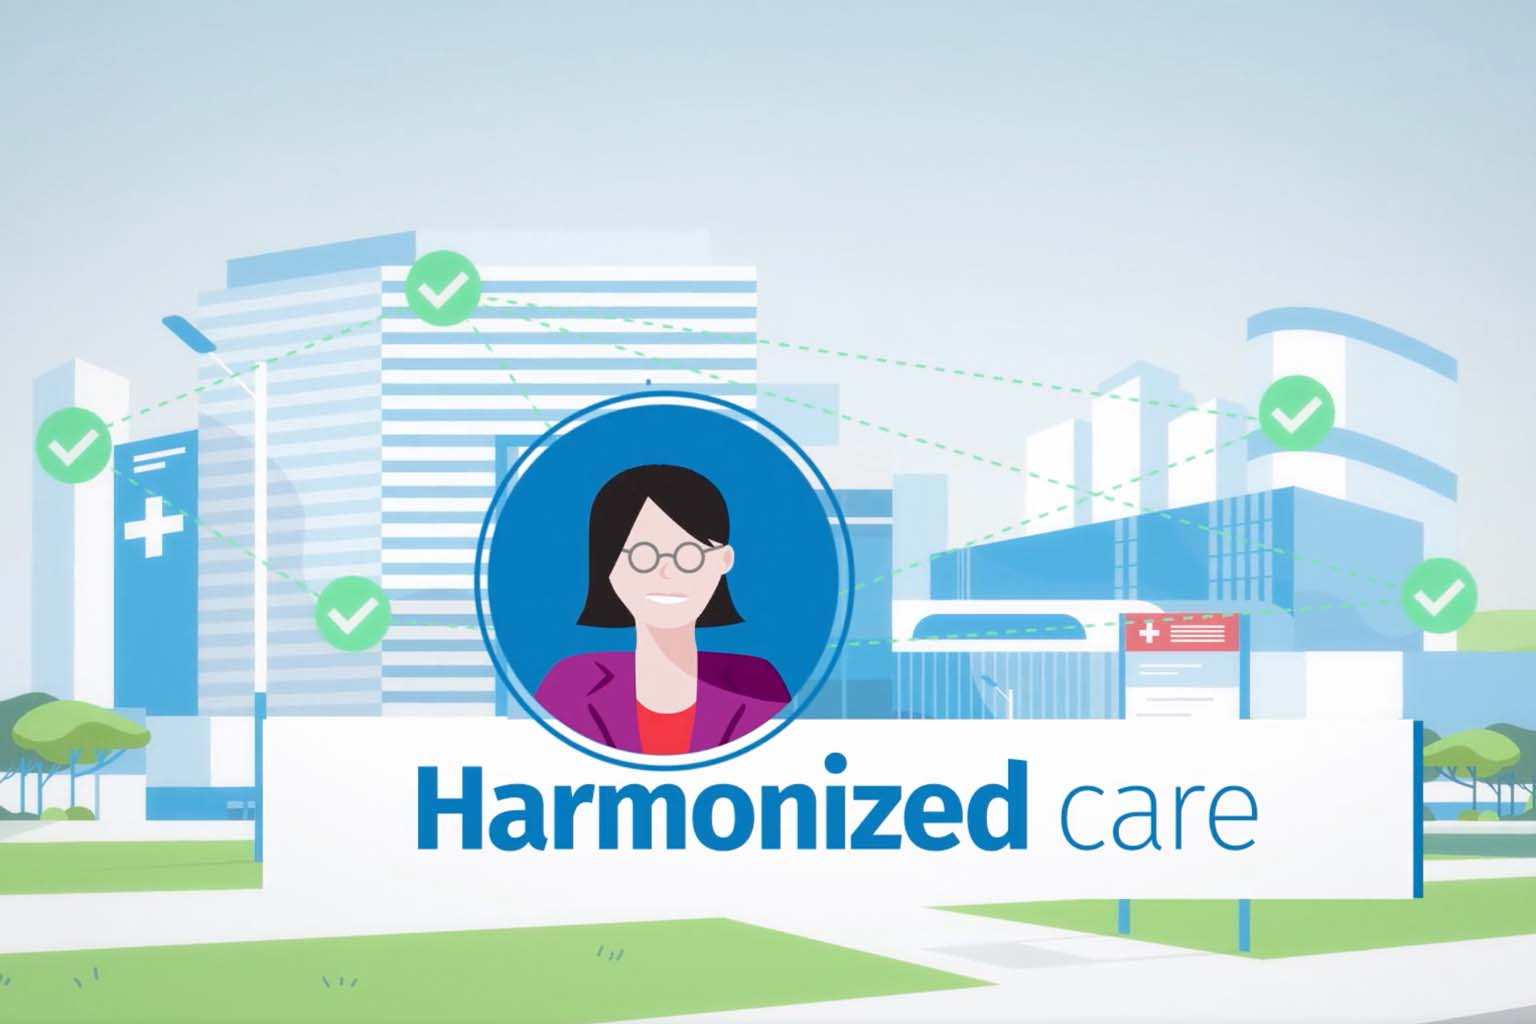 video screen - harmonized care